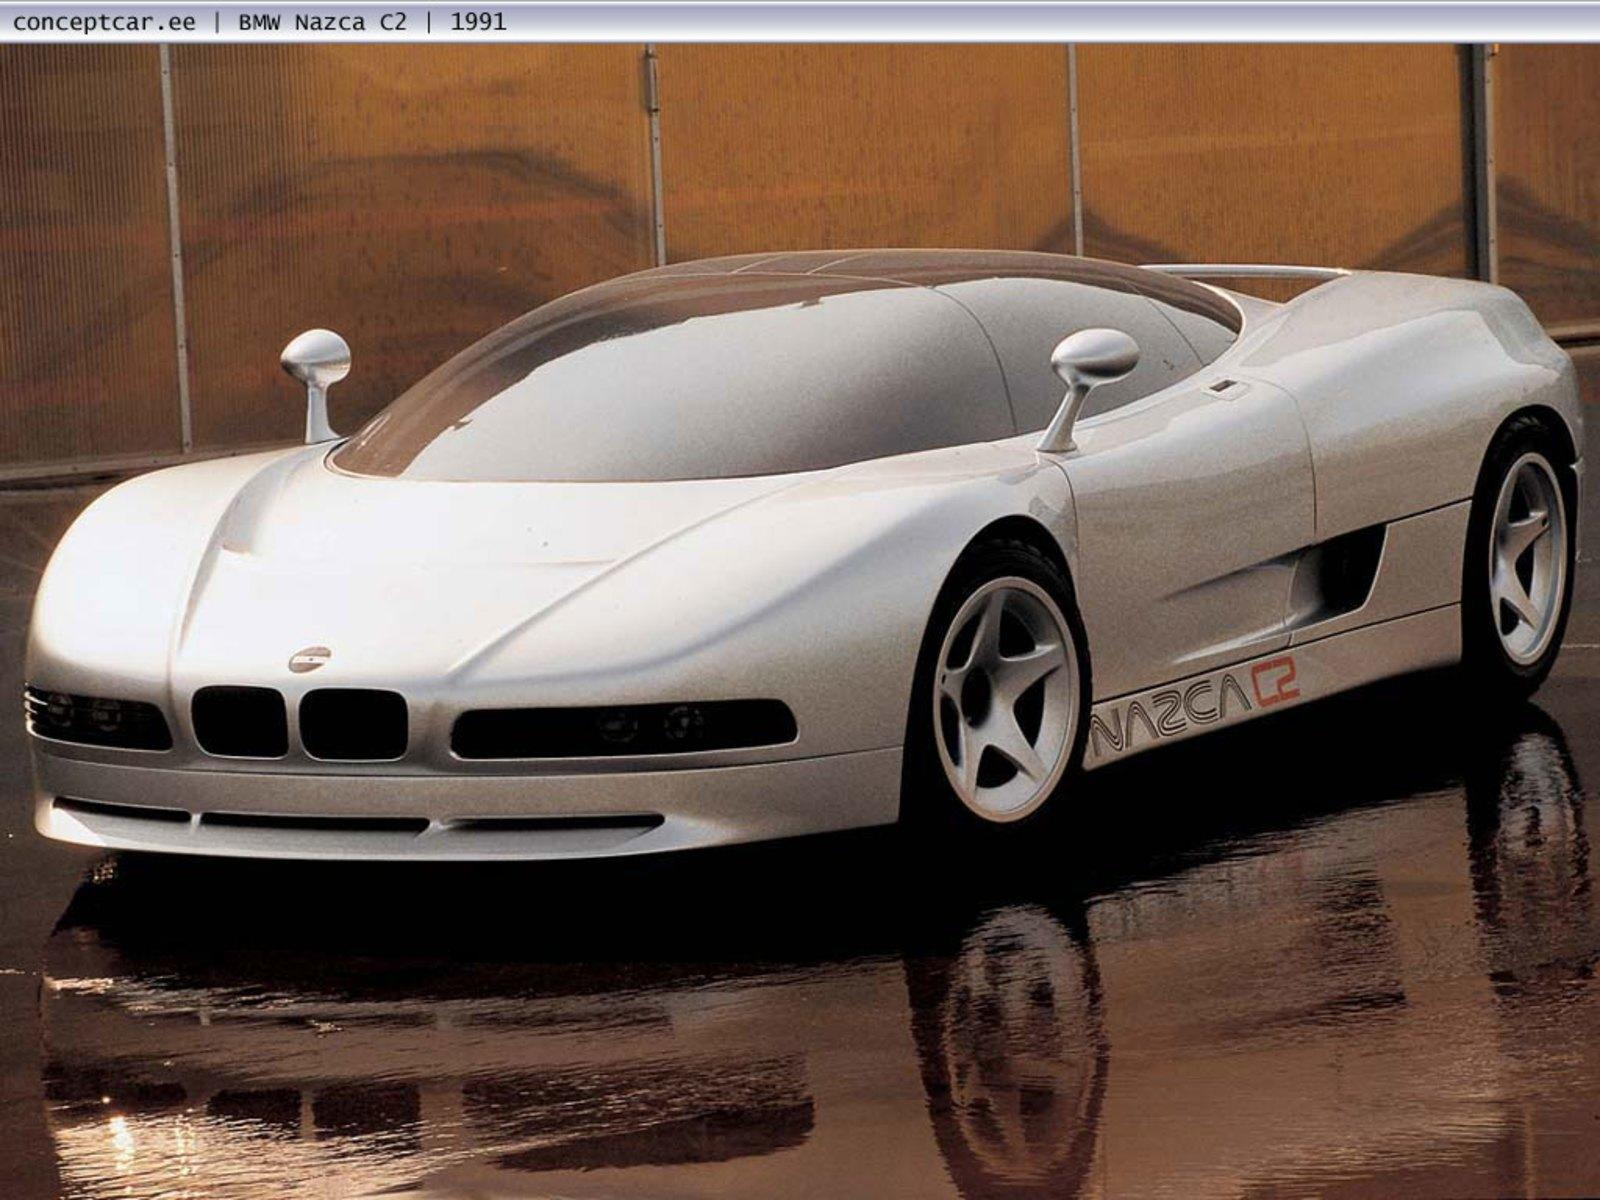 Muscle Car 4k Wallpaper 1991 Bmw Nazca C2 Review Top Speed